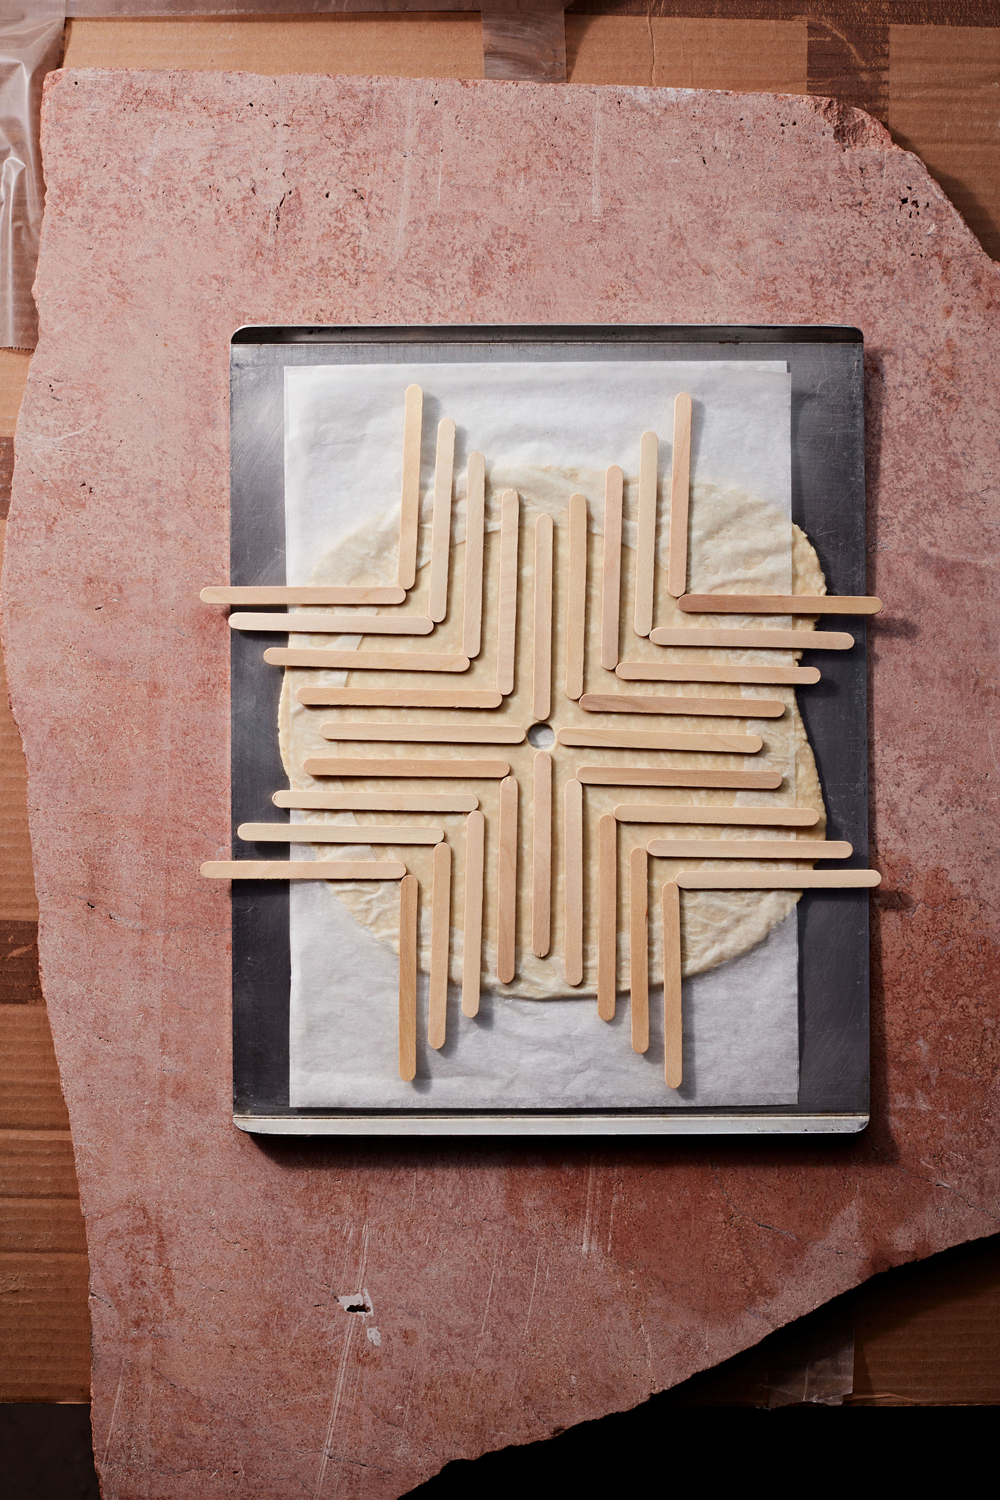 popsicle sticks creating a pattern on pie crust